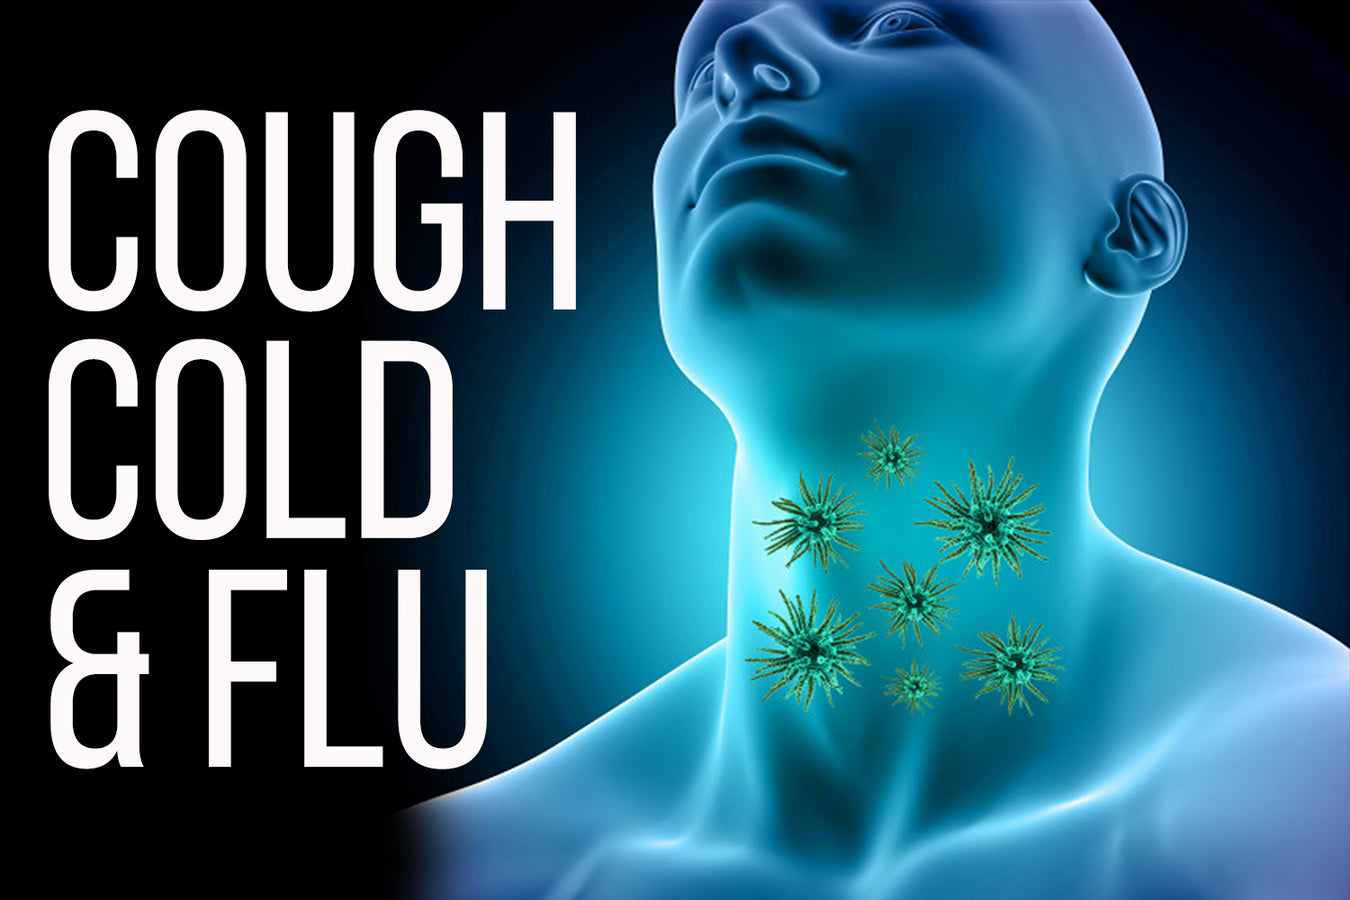 COUGH COLD & FLU